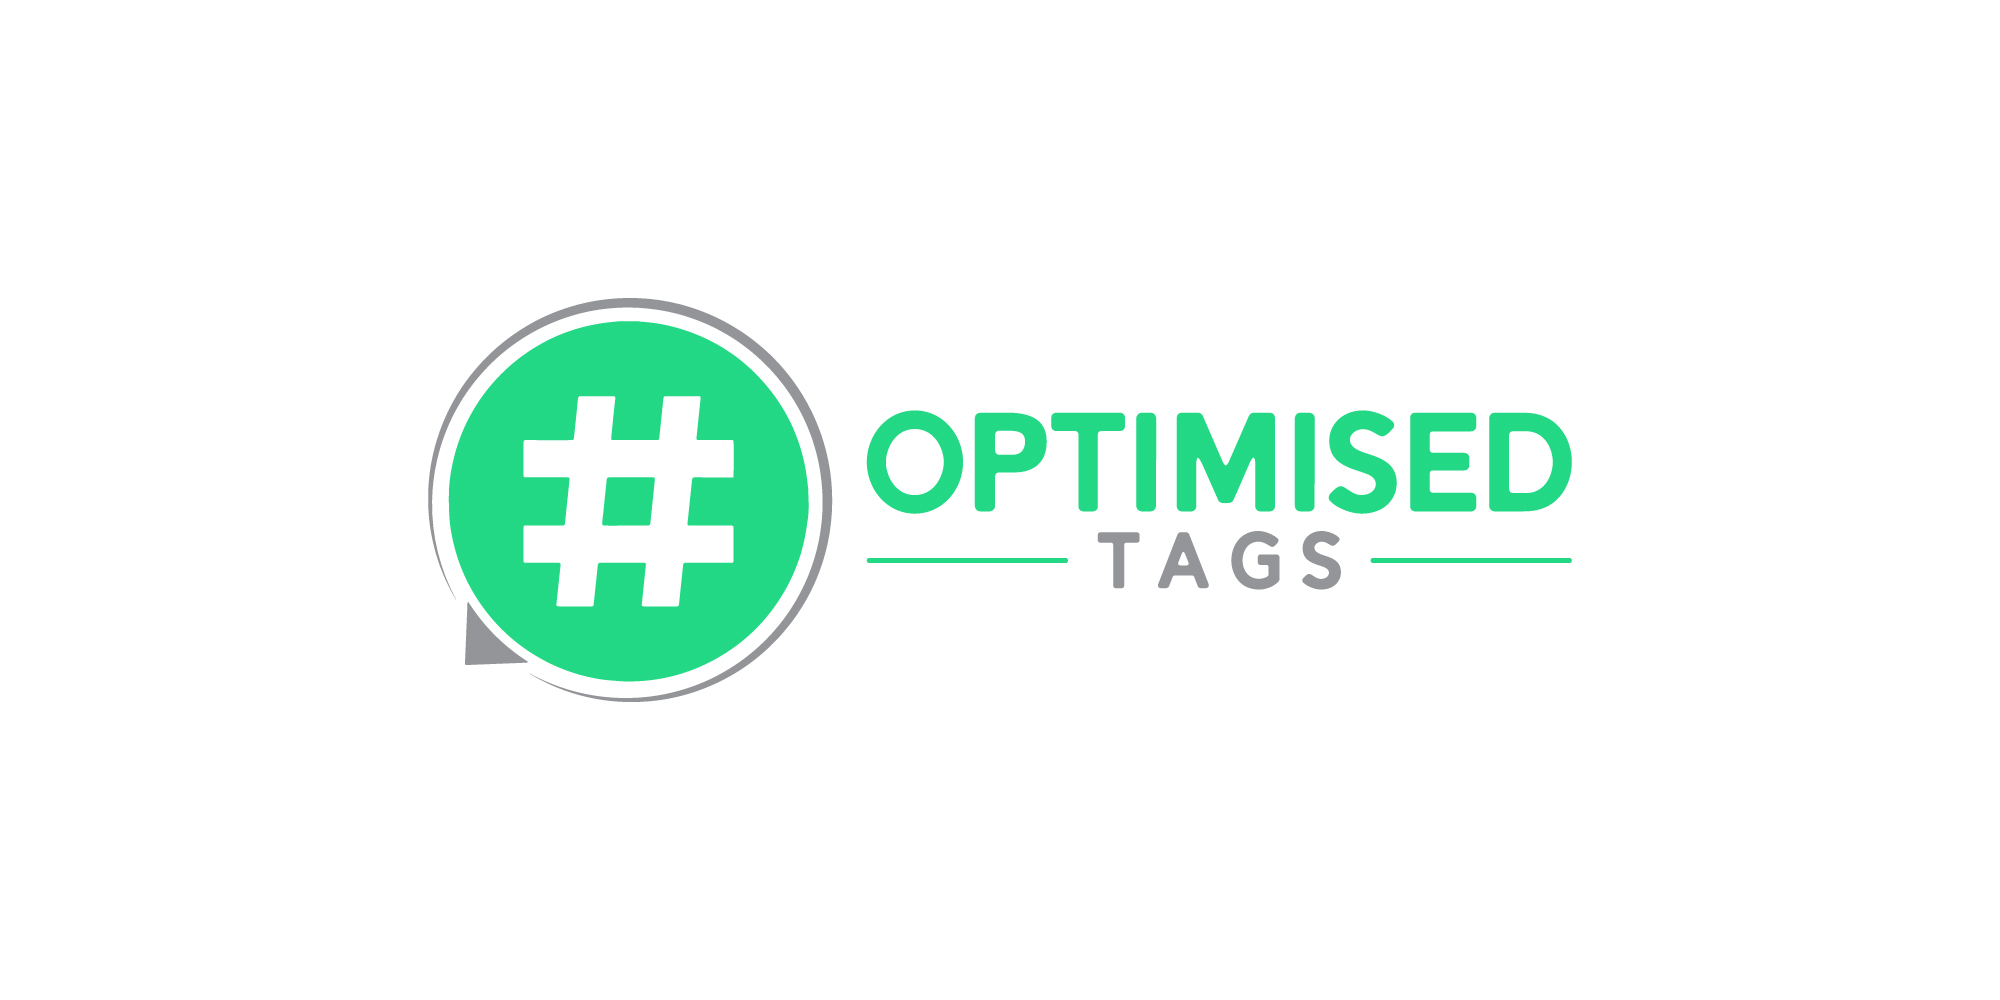 Portfolio of 30 Super-Targetetd Hashtags + Tips & Strategies